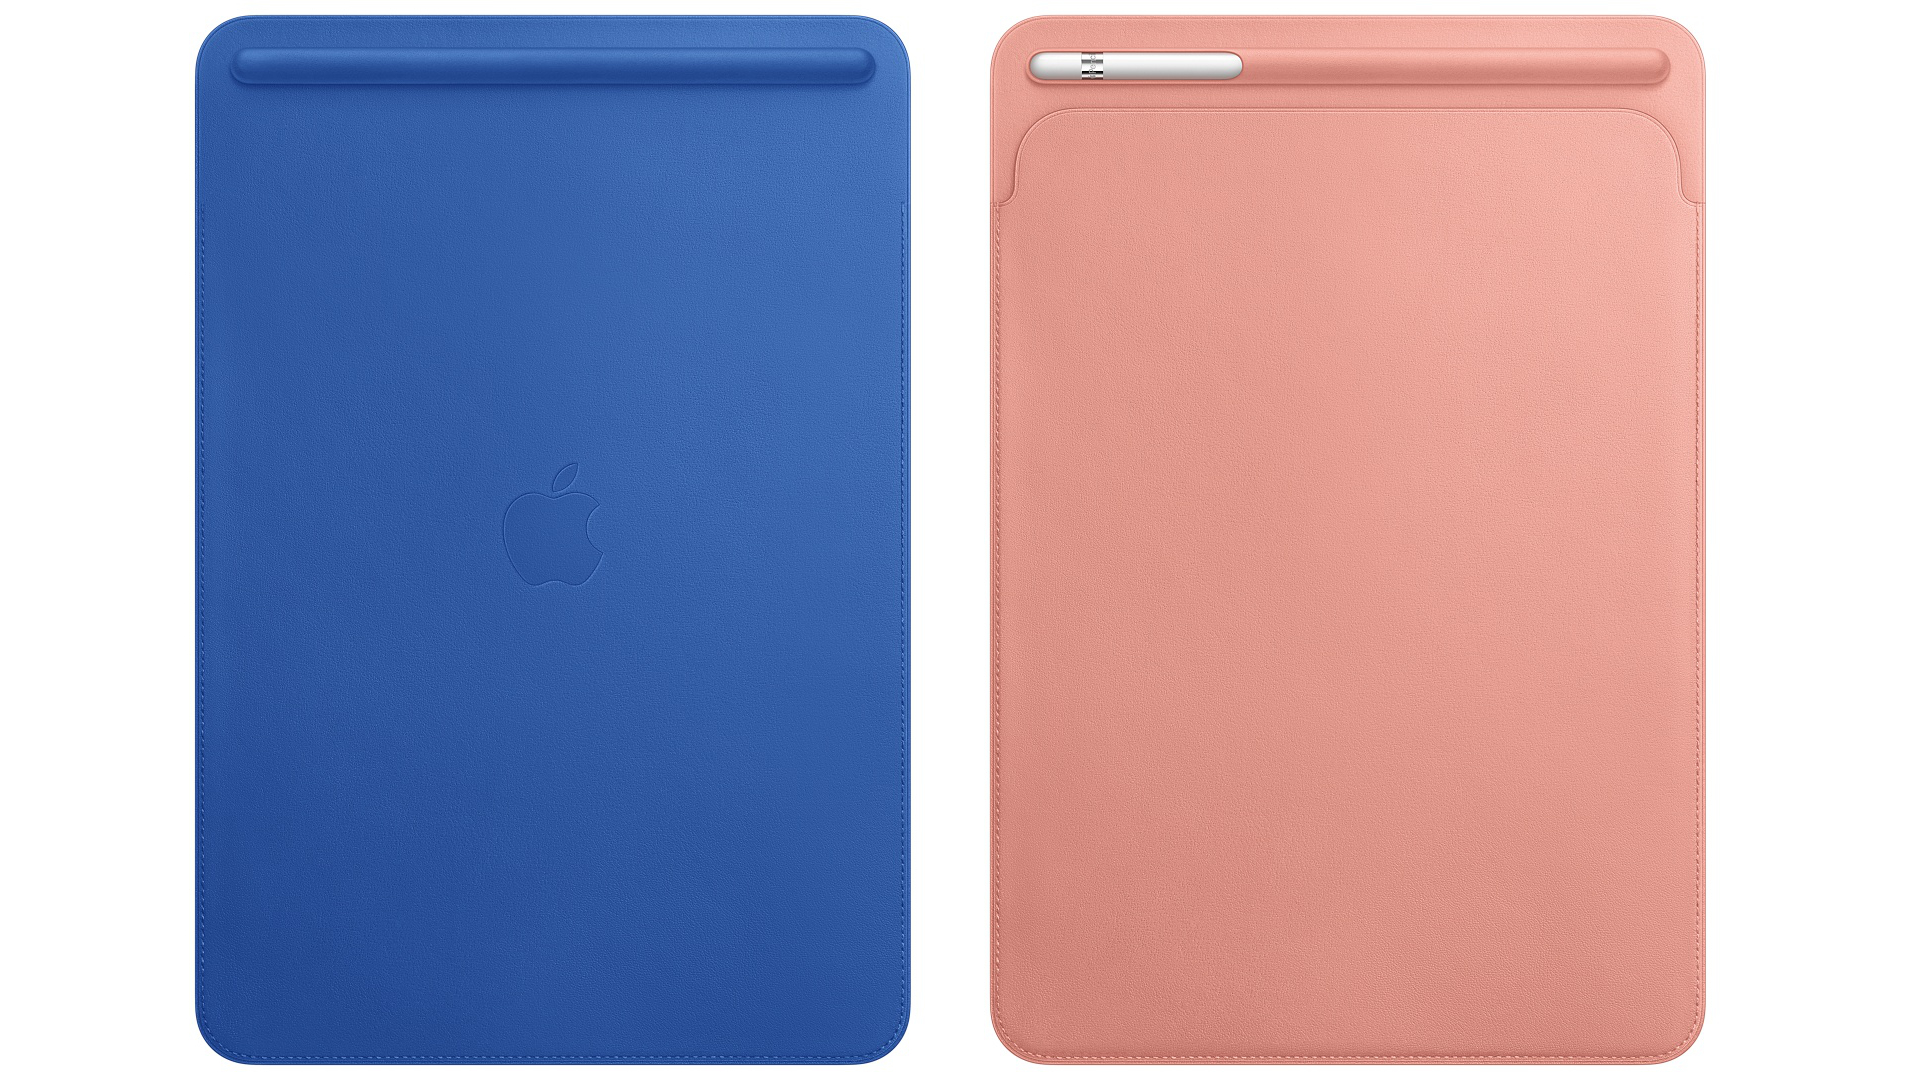 Apple launches new spring-inspired Leather Sleeve and Smart Cover colors for 10.5-inch iPad Pro